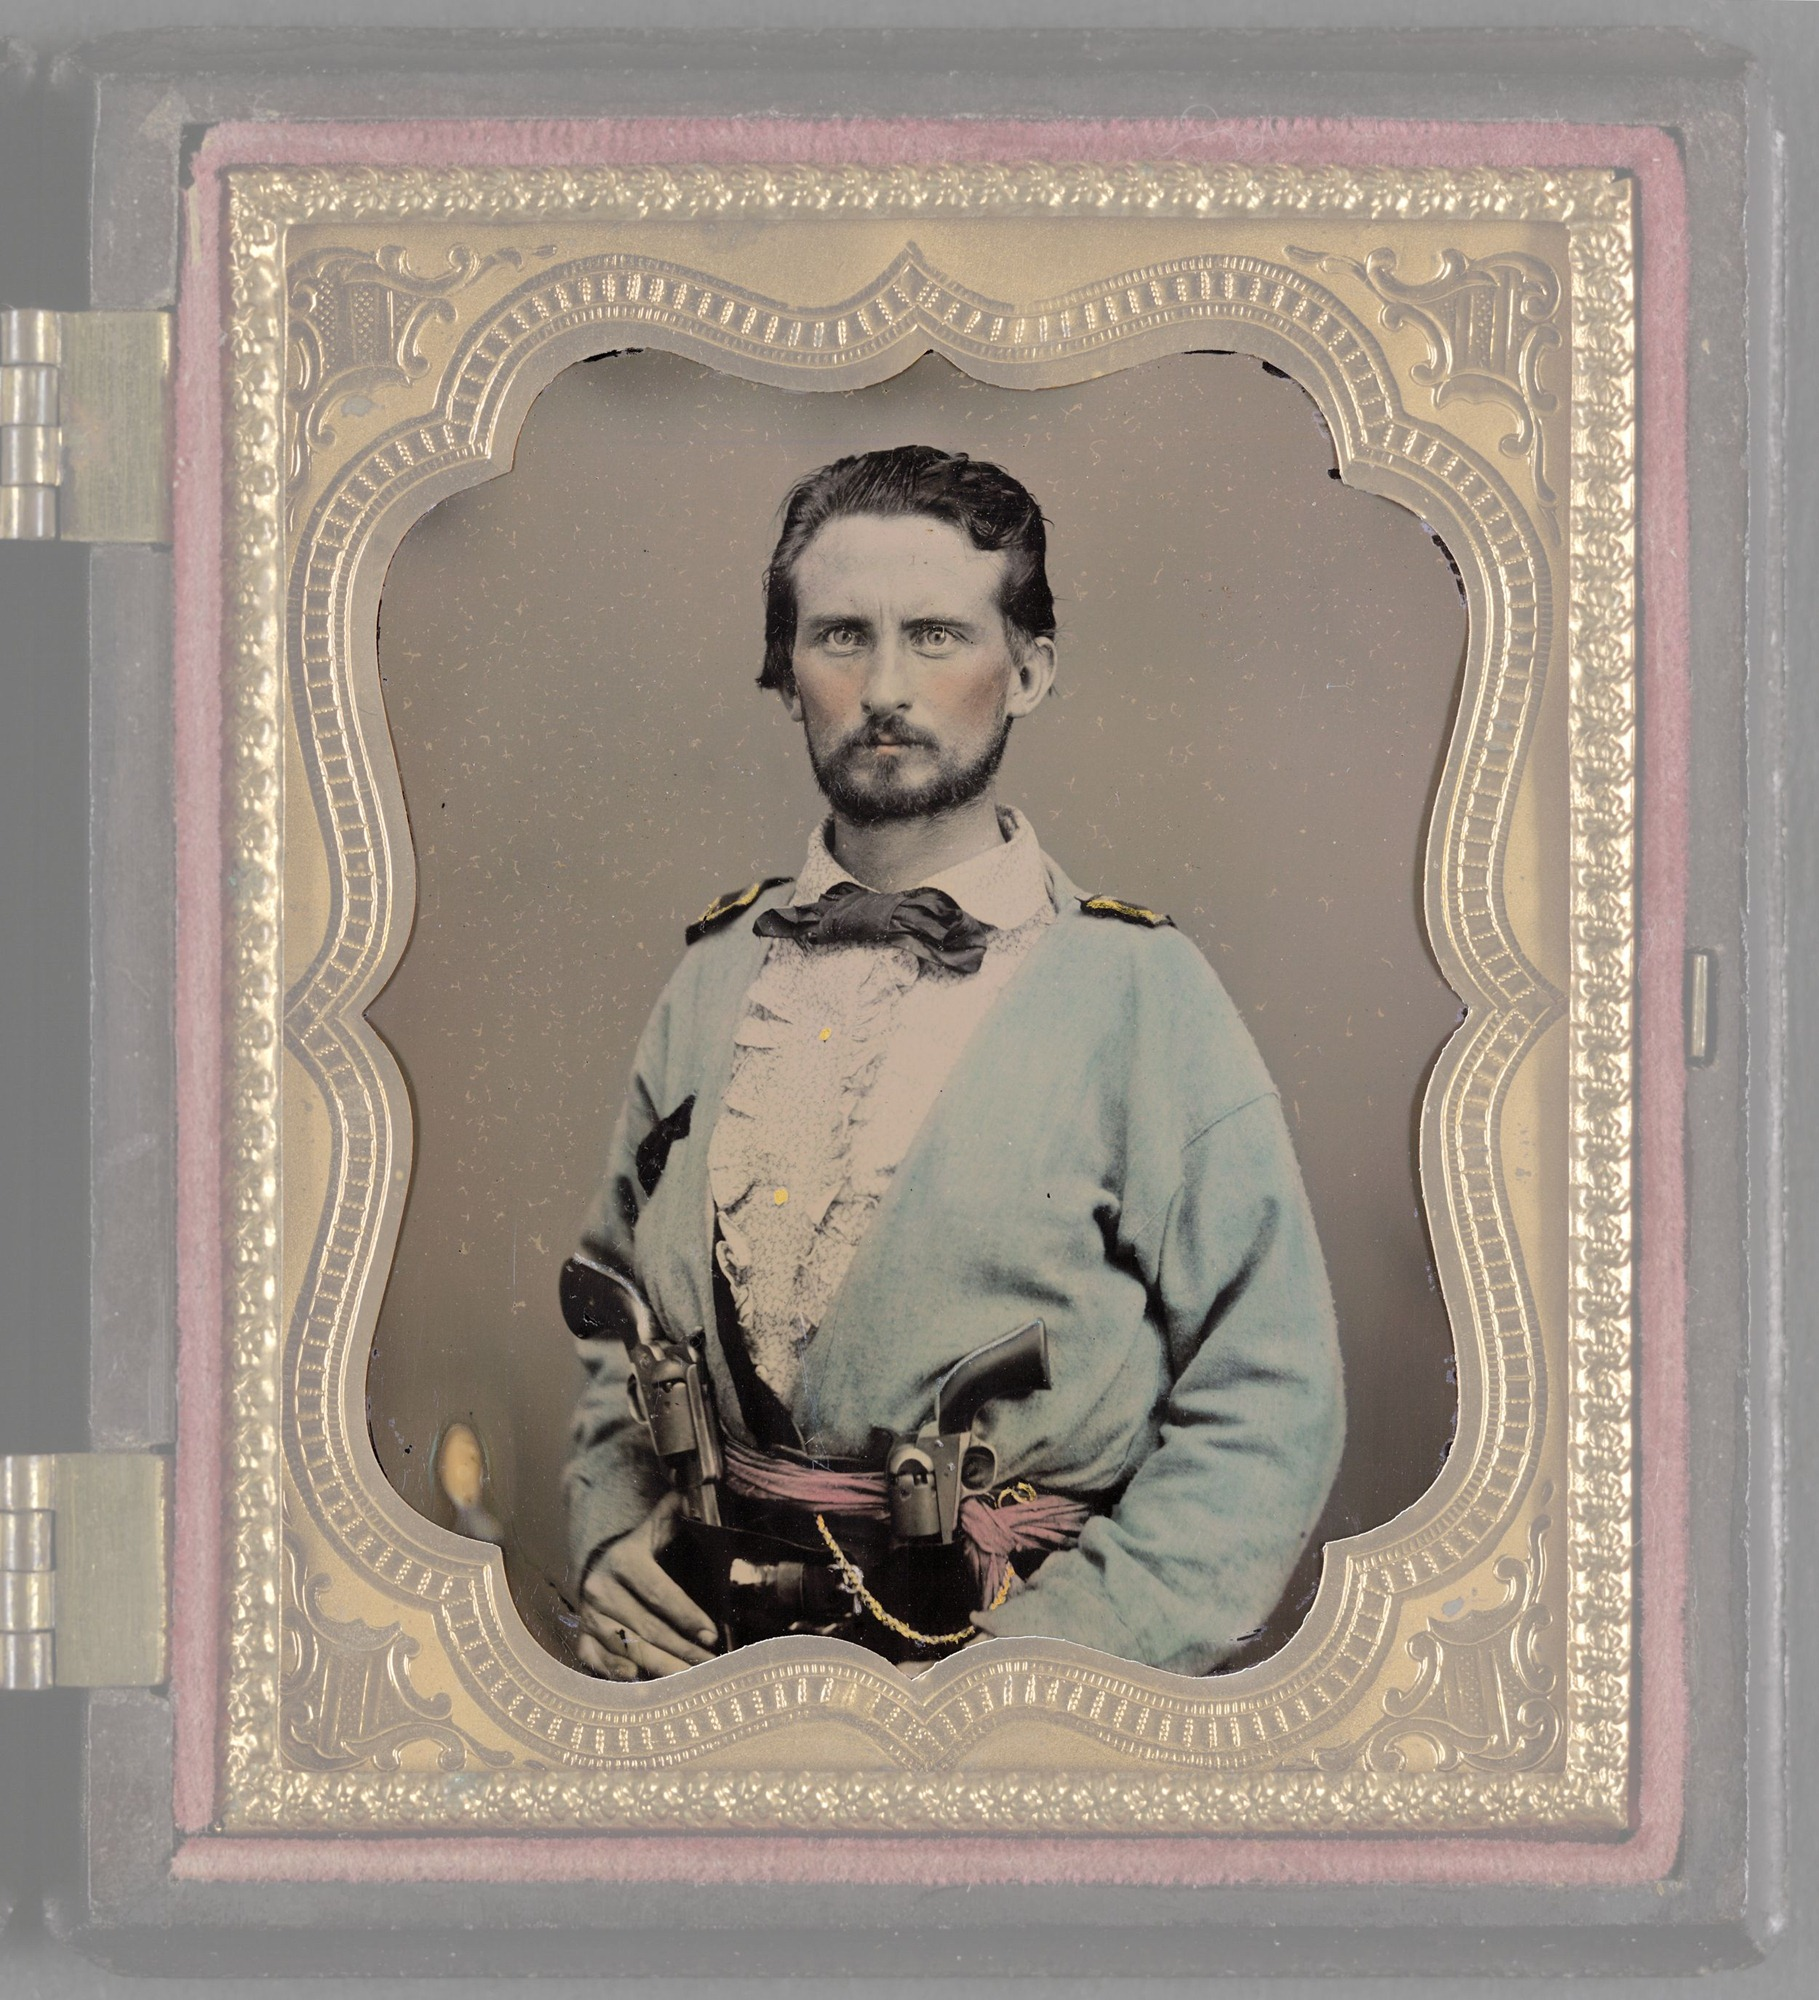 Unidentified-soldier-from-Kentucky-in-Confederate-uniform-with-two-revolvers.jpg